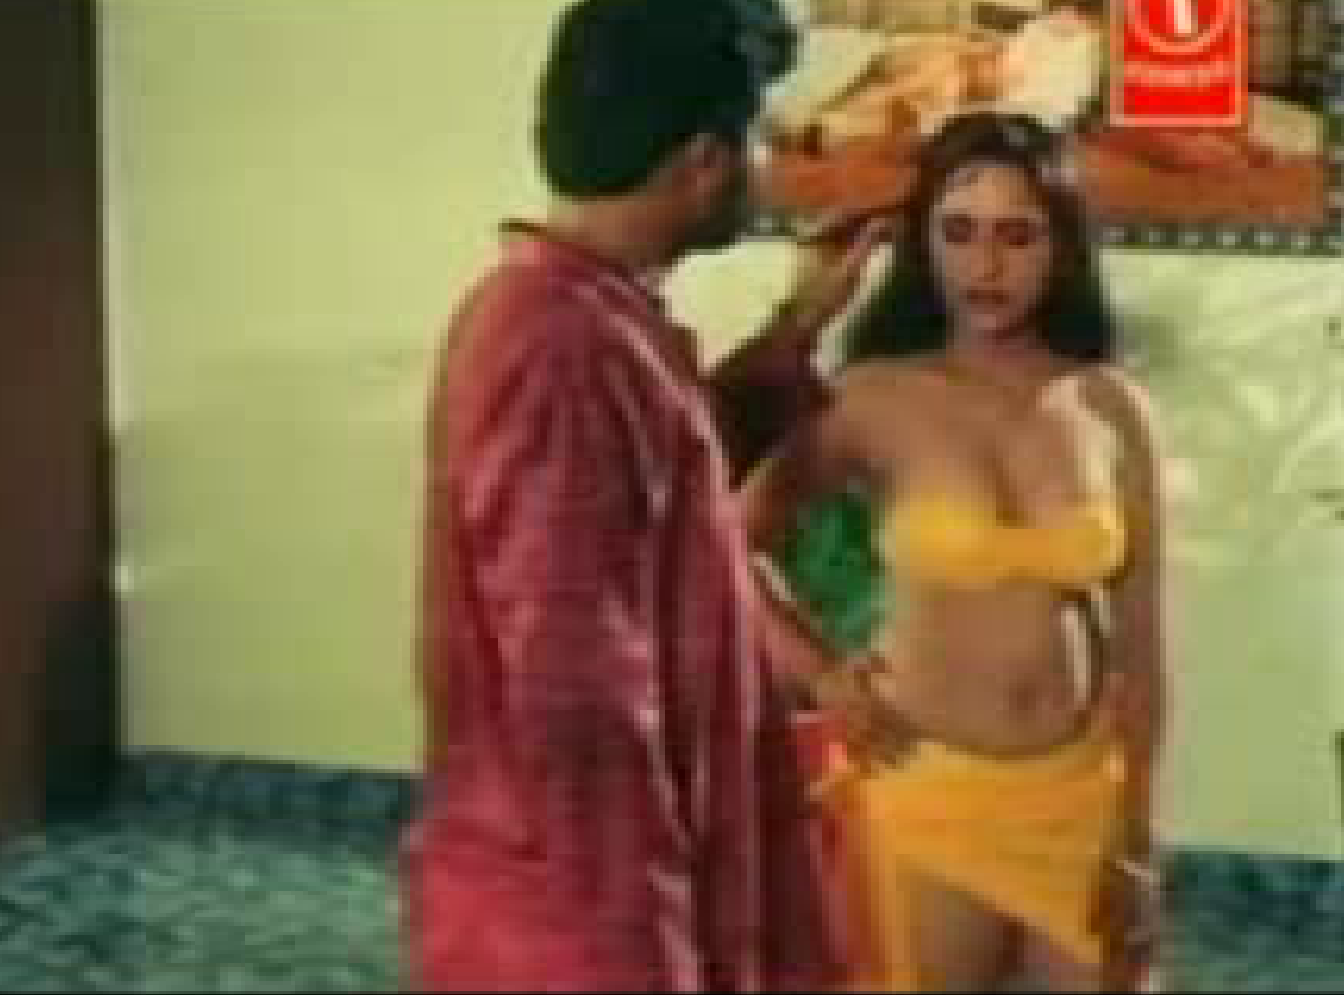 Mallu Reshma Hot Aunty In Yellow Bra Pictures